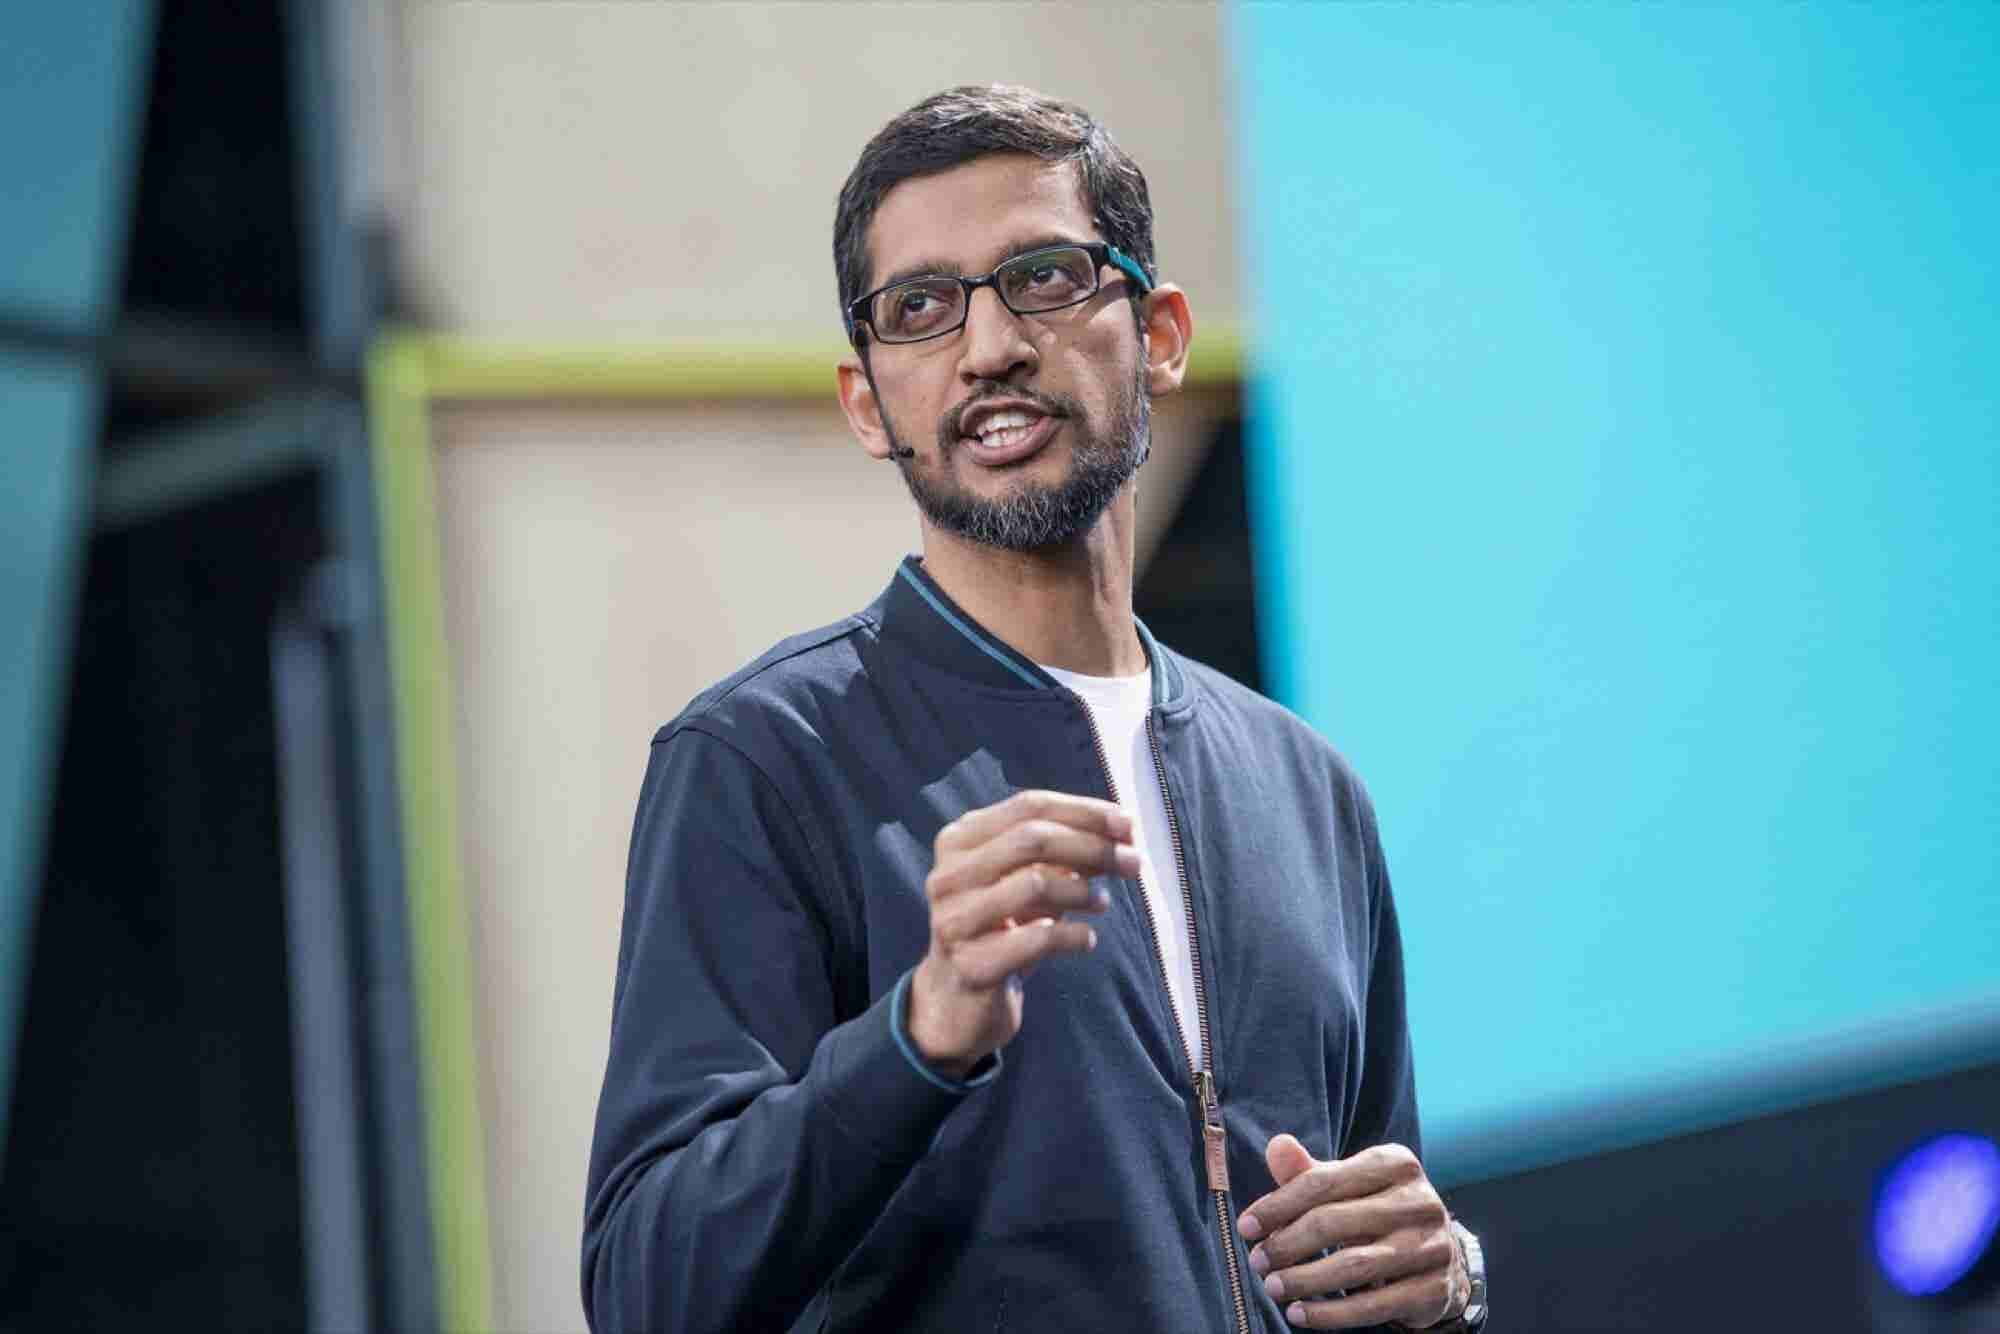 Watch the Keynote of Google I/O '17 Live Here